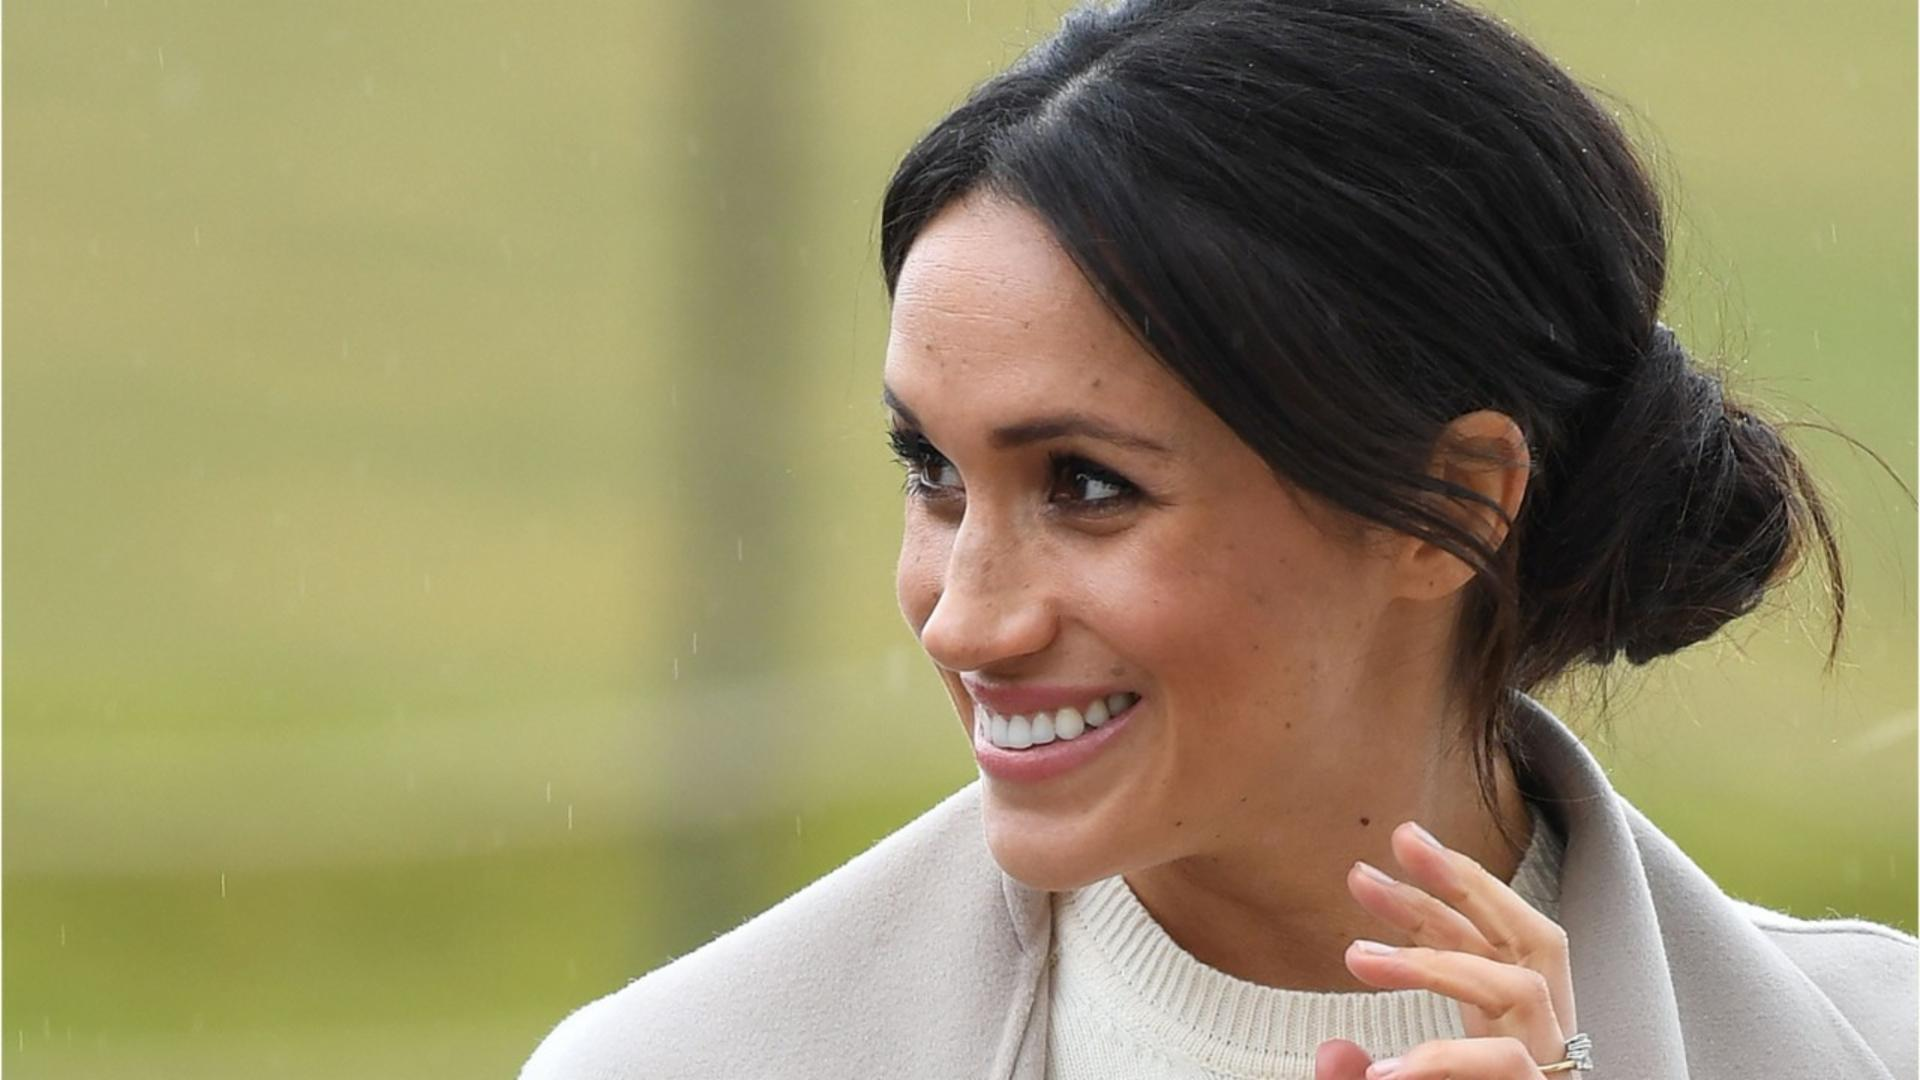 Meghan Markle's former trainer of 3 years says she likes circuit training and using mini bands — here's what her workouts look like